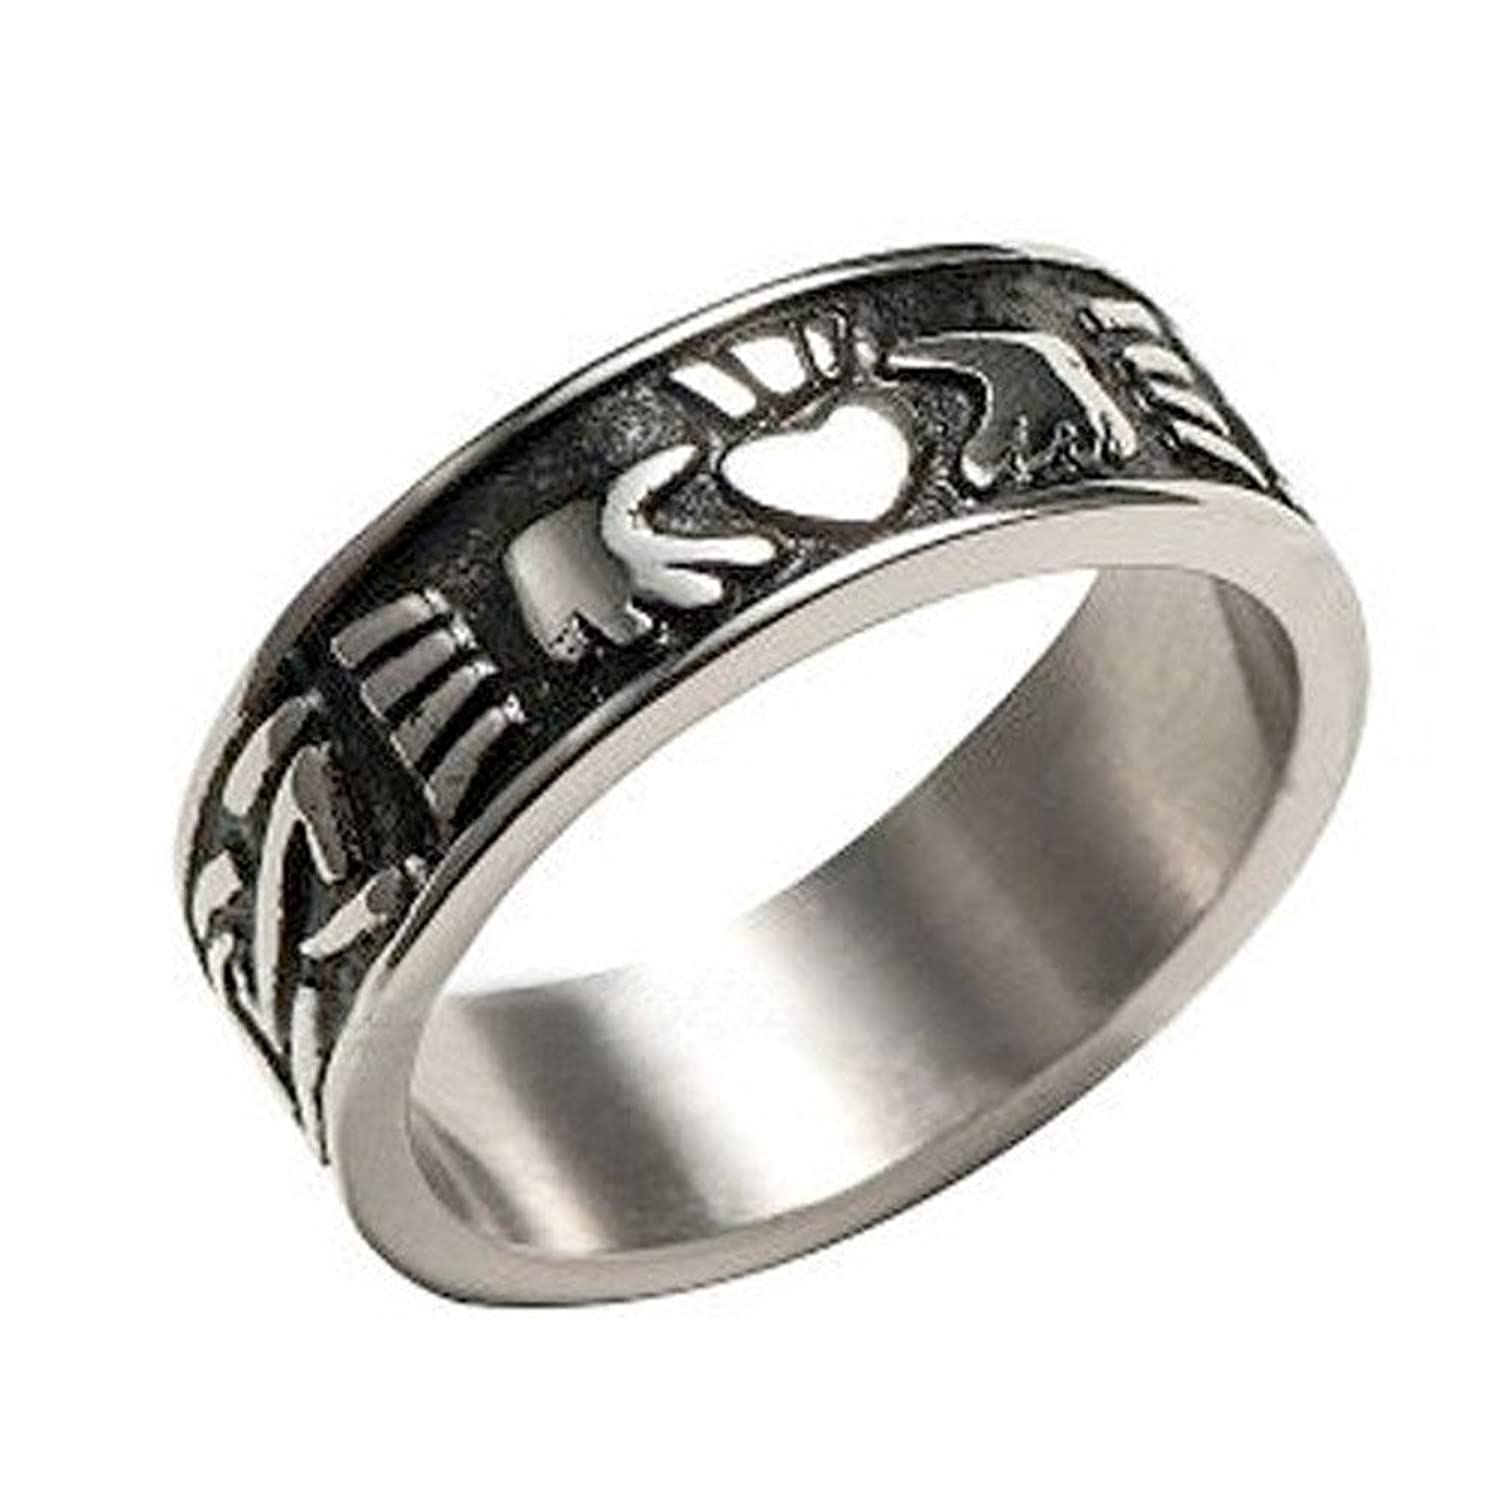 Irish Claddagh Ring for Men Stainless Steel Lovers Heart Celtic